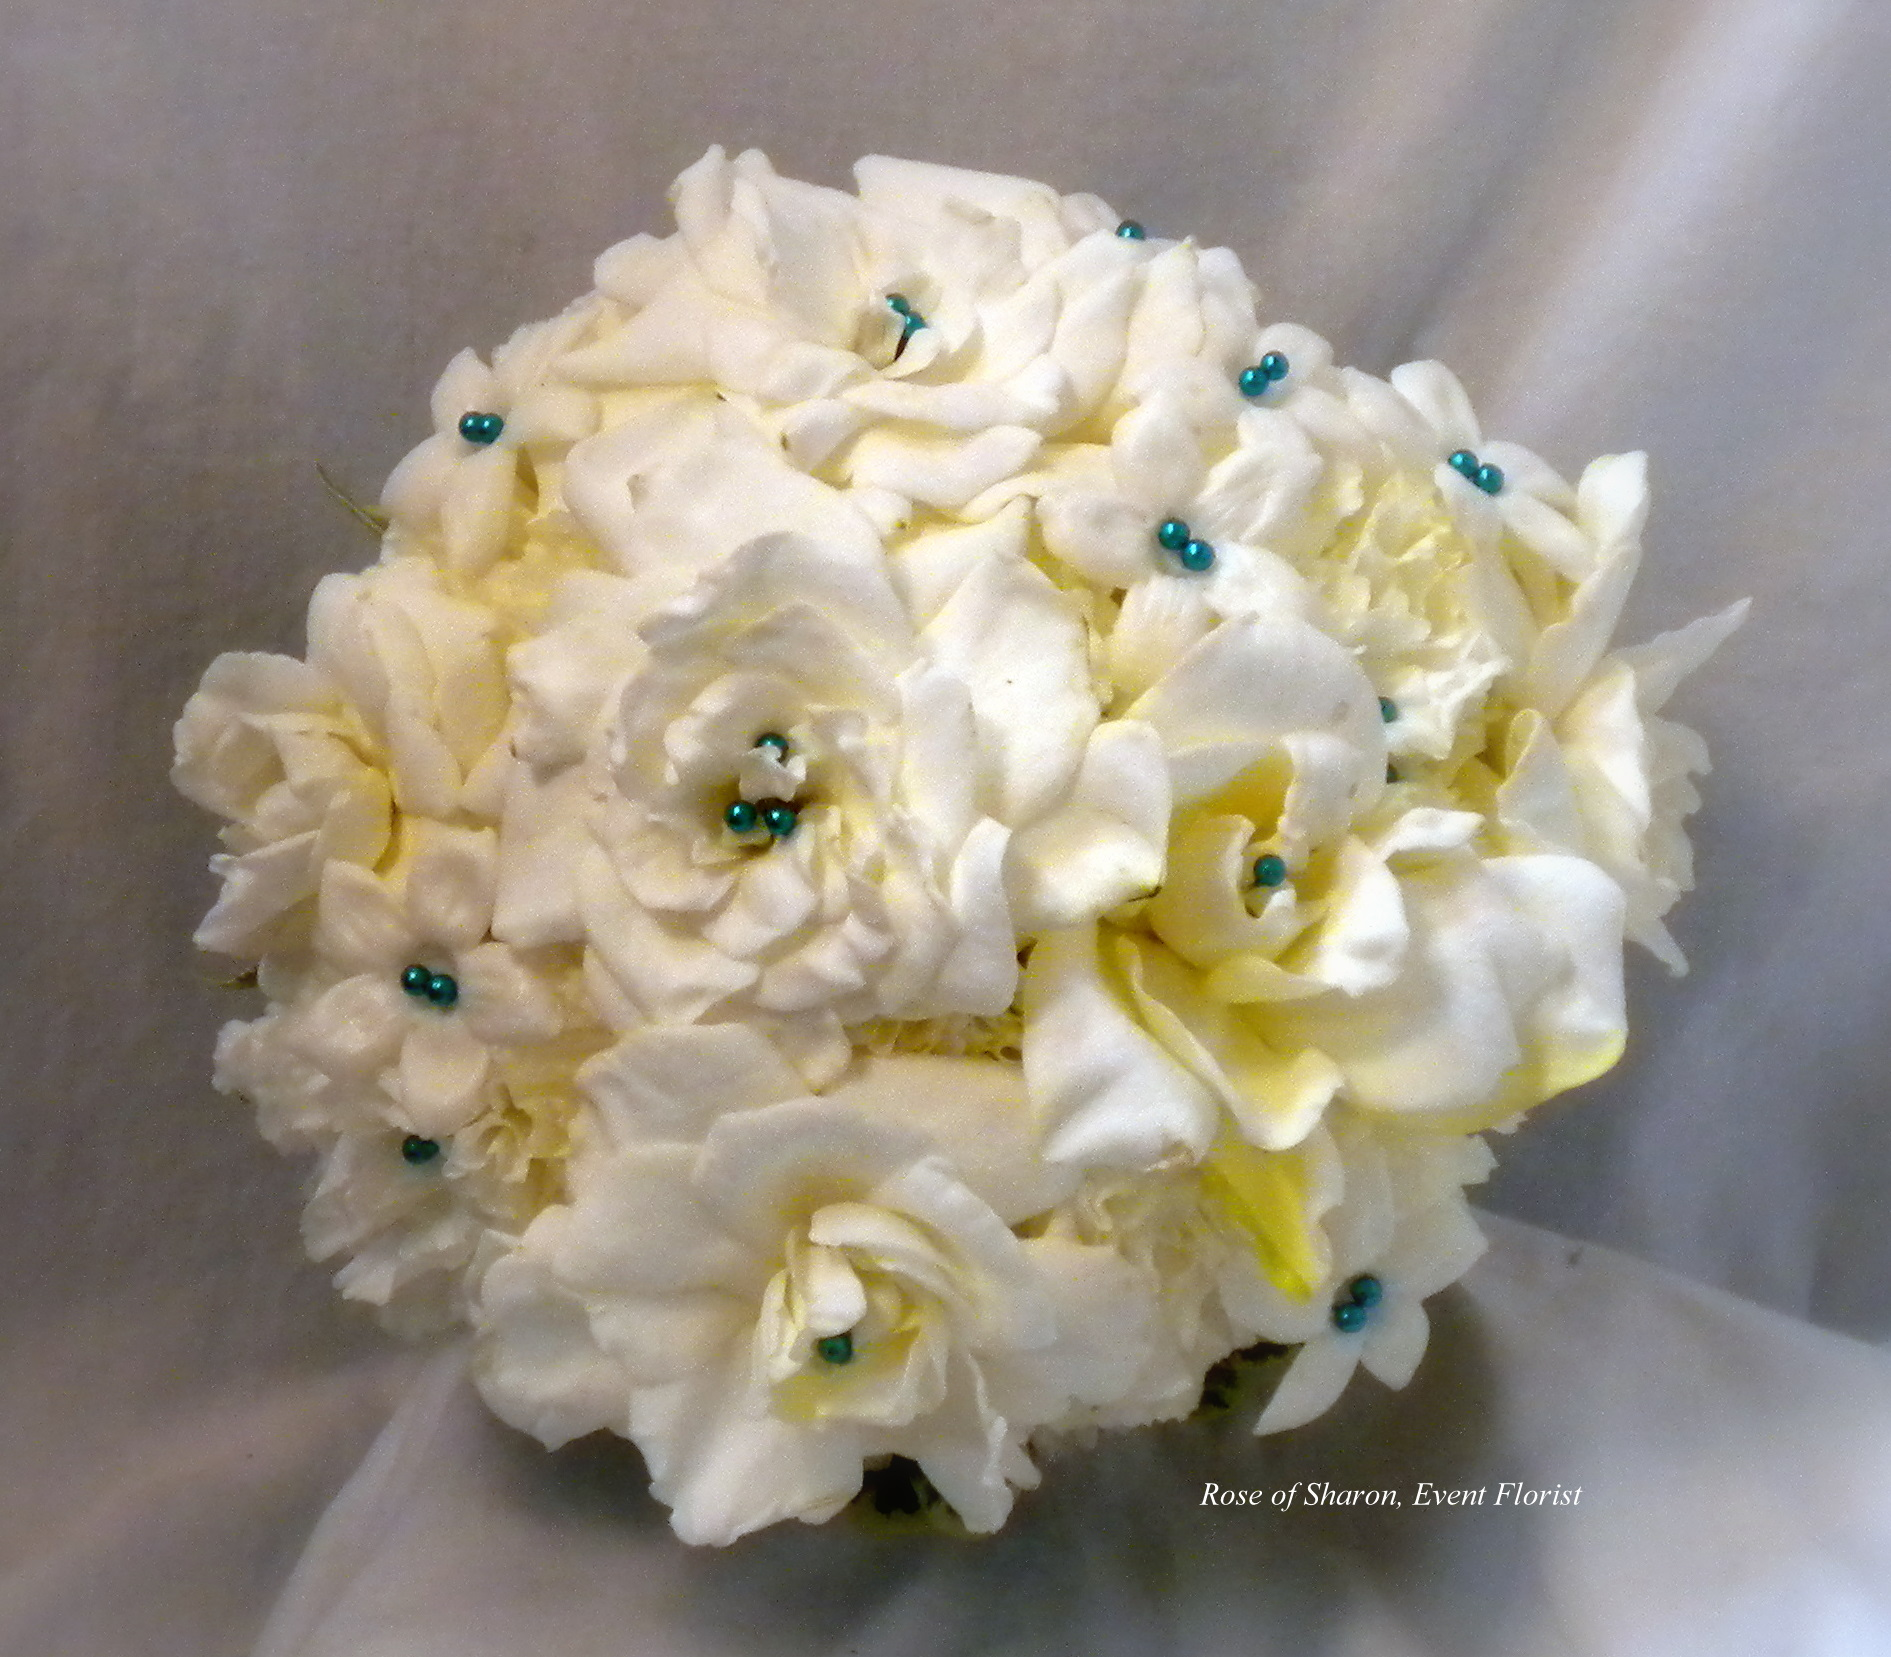 Ivory Hand-Tied Bouquet with Gardenia, Stephanotis, Carnations and Blue Pearl Accents. Rose of Sharon Floral Designs